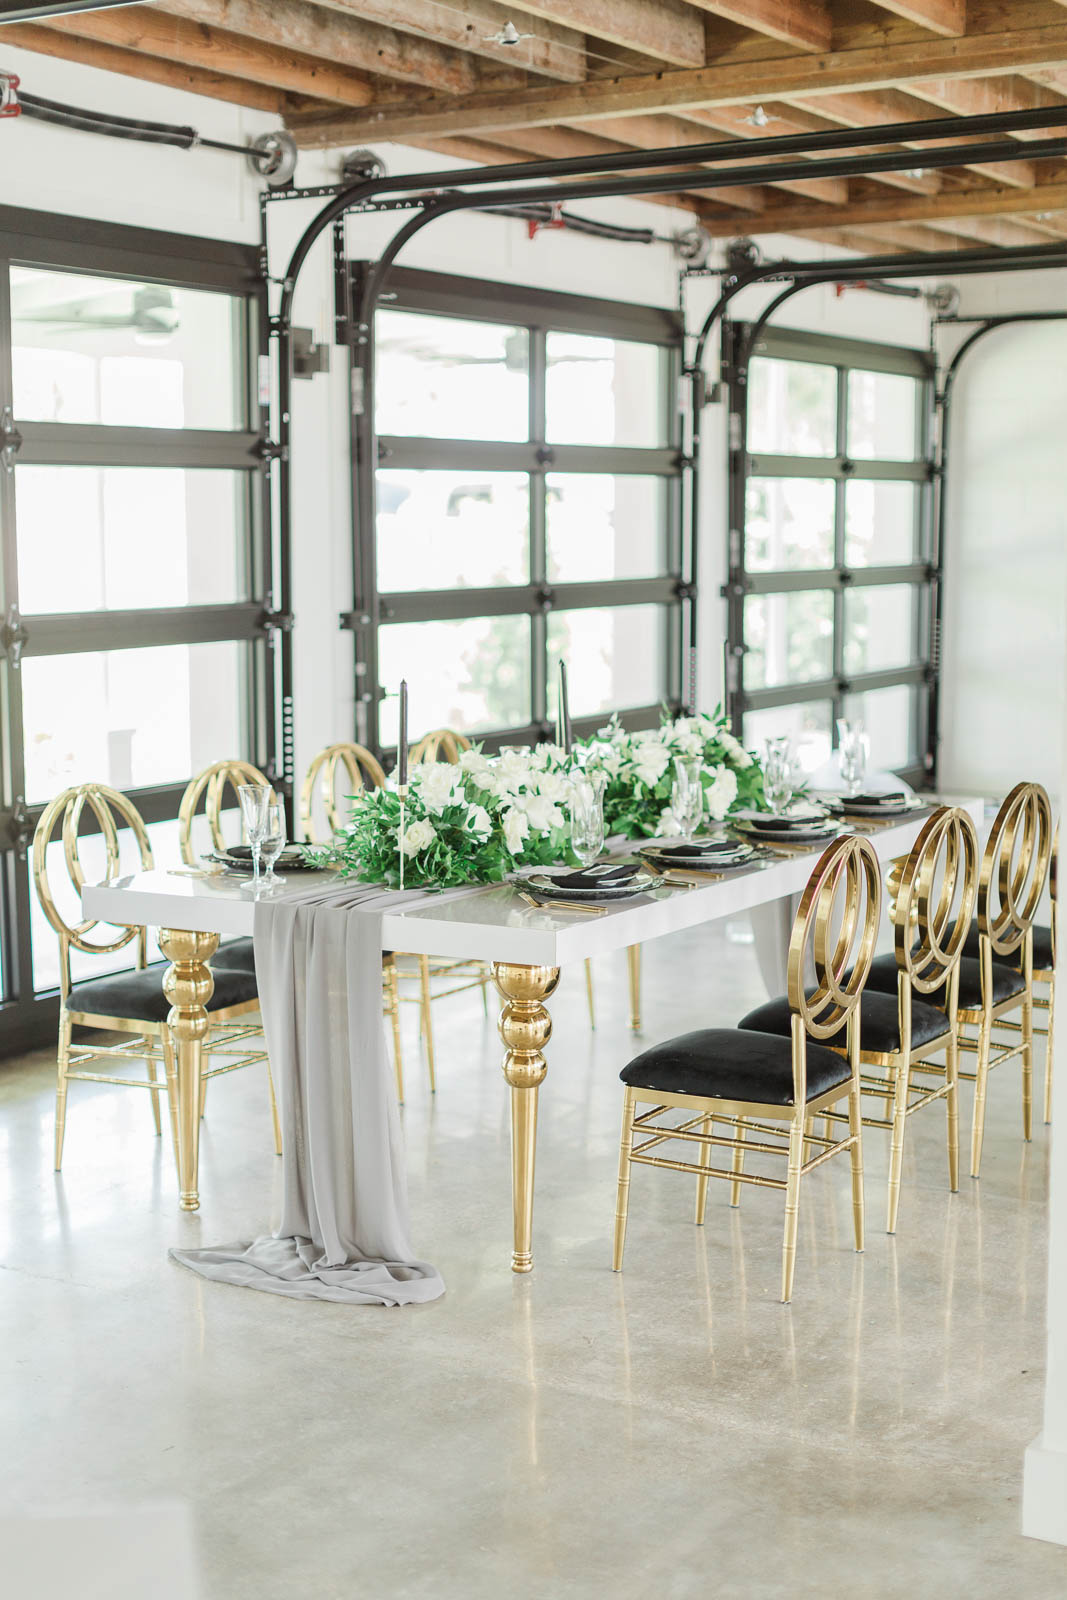 Reception table with gold chairs and white and greenery centerpieces